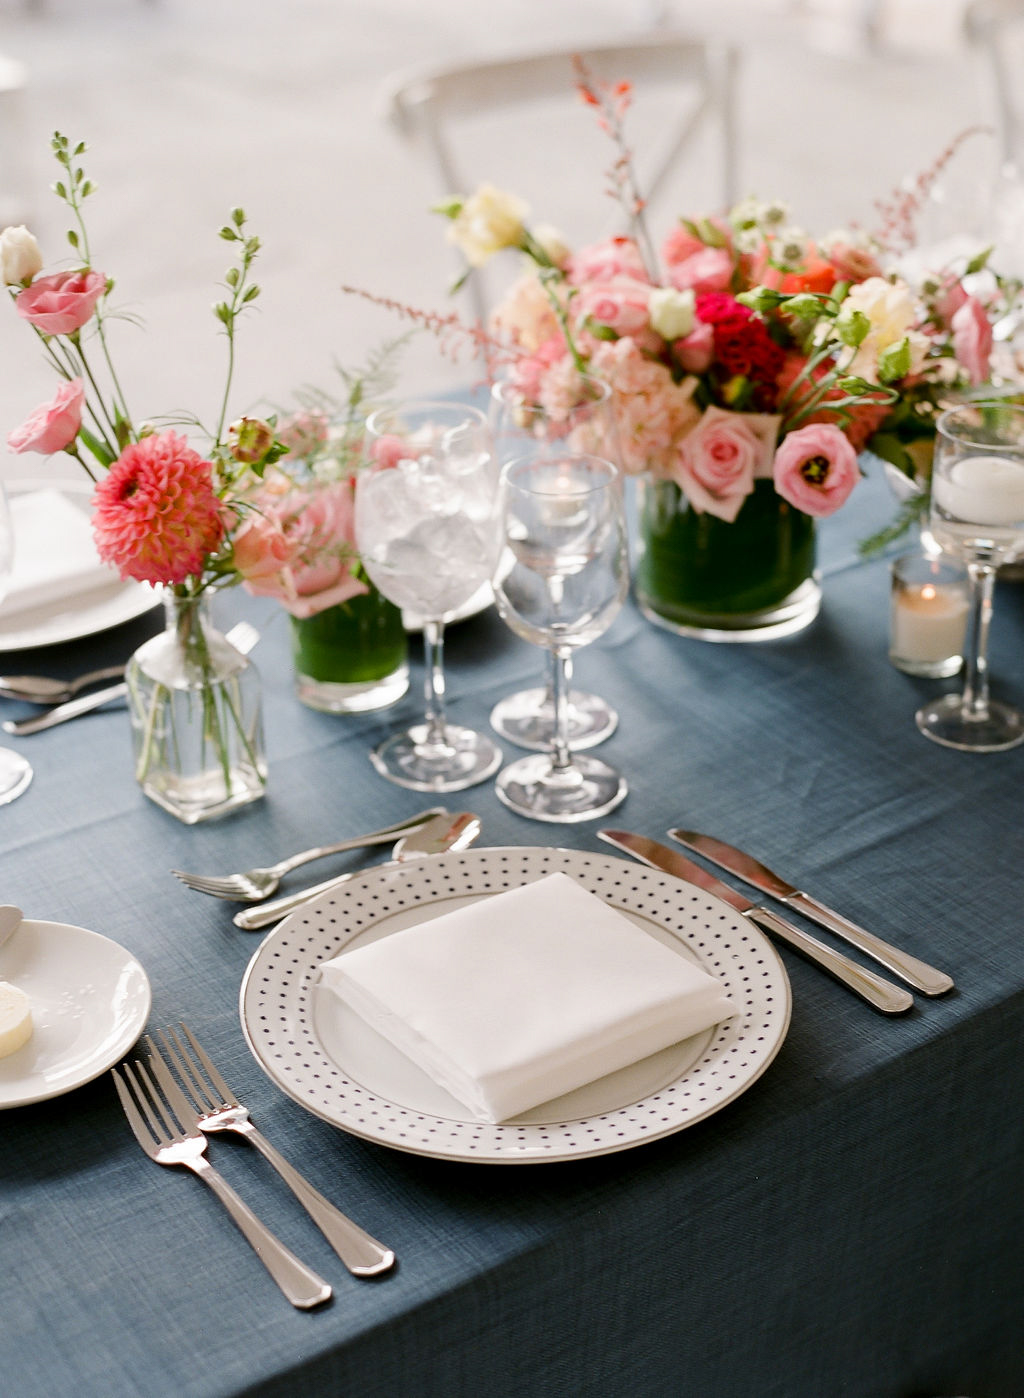 elegant wedding reception place setting with blue tablecloth and pink flowers